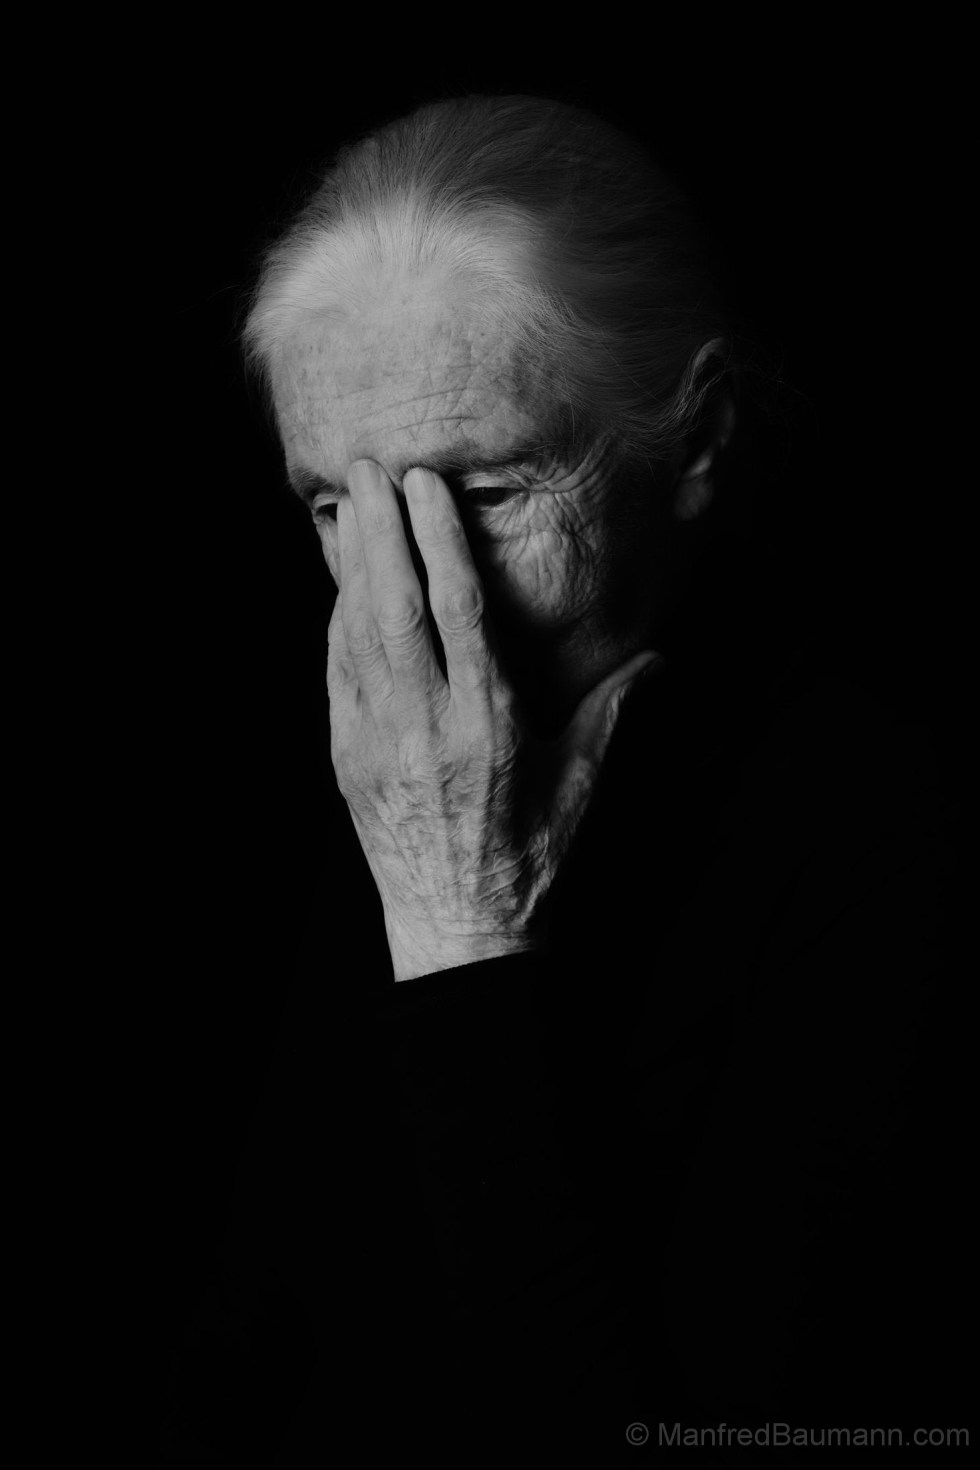 Jane Goodall by Manfred Baumann 2019 2